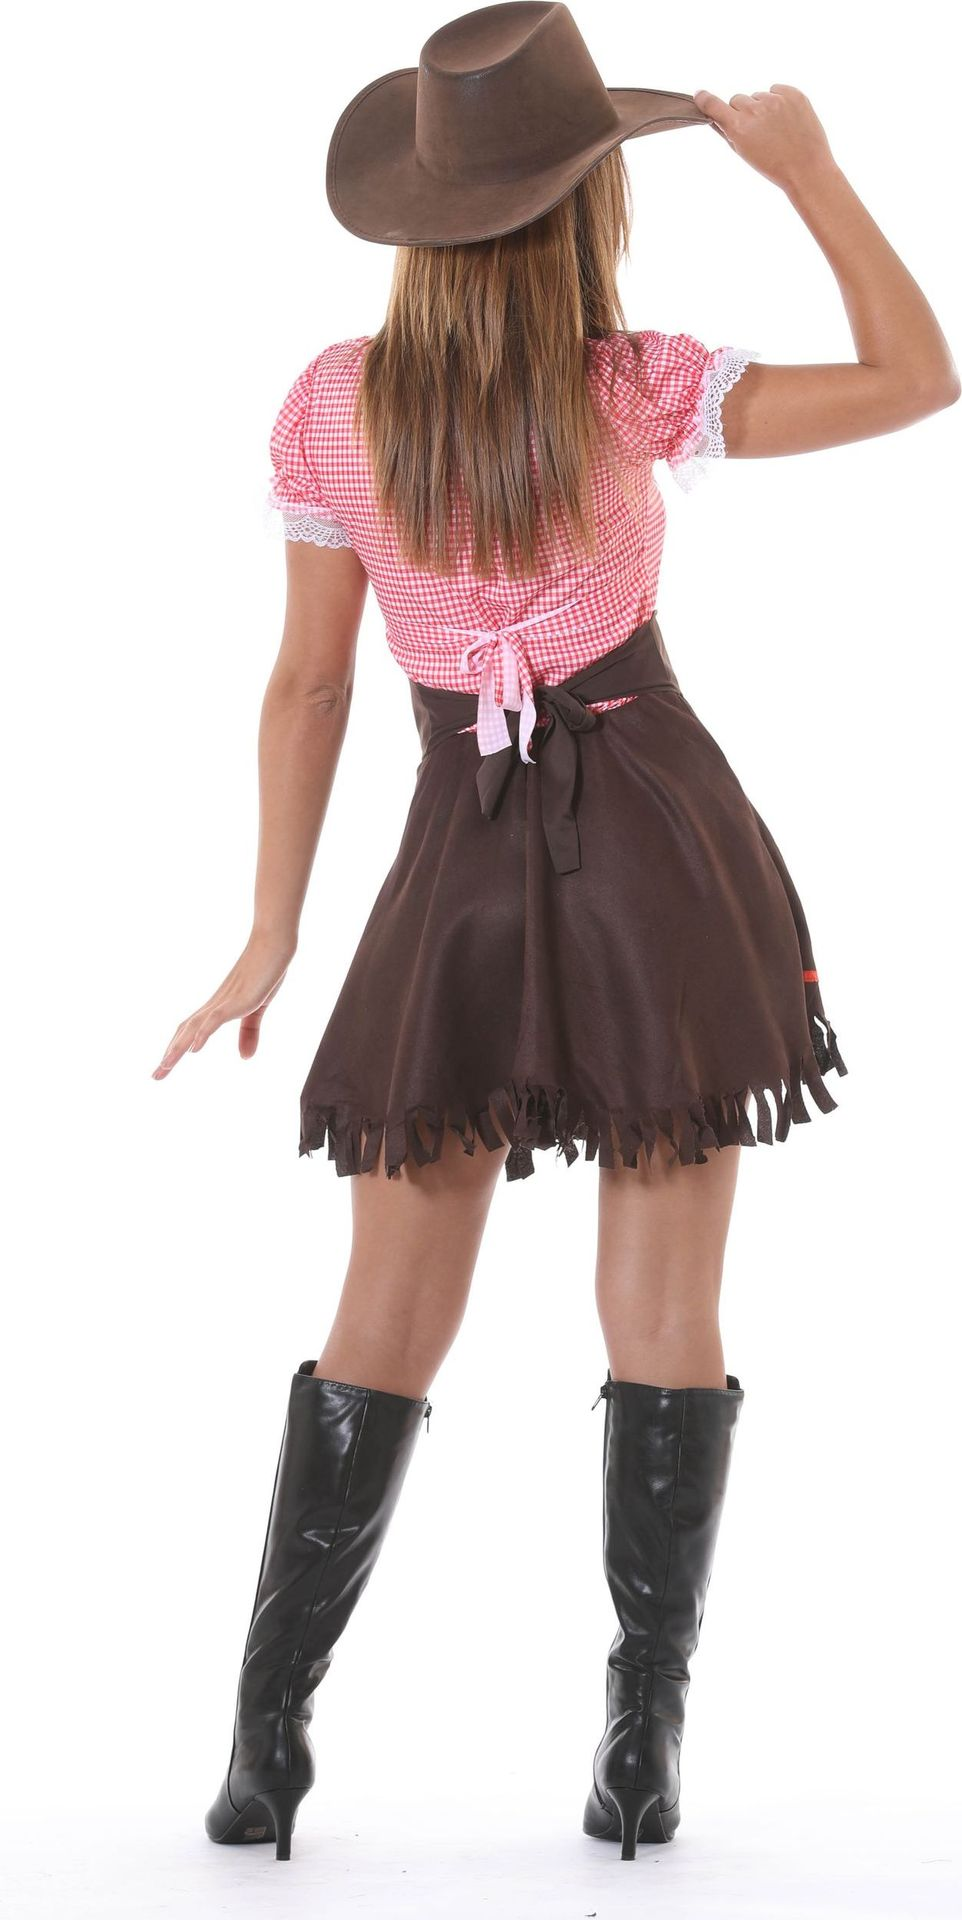 Cowgirl carnaval